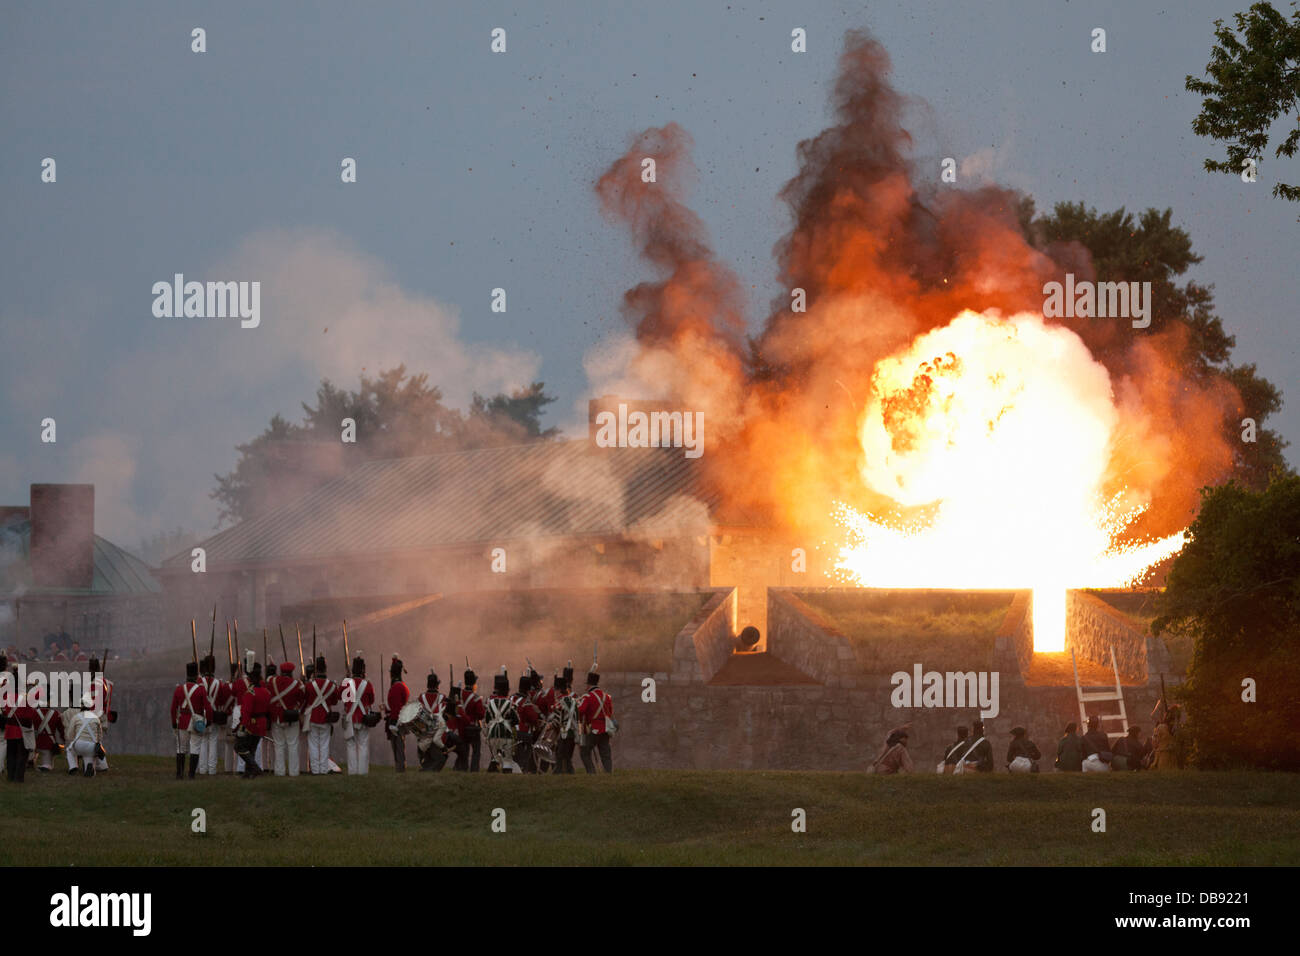 Canada,Ontario,Fort Erie,Old Fort Erie, War of 1812 re-enactment of the Siege of Fort Erie - Stock Image